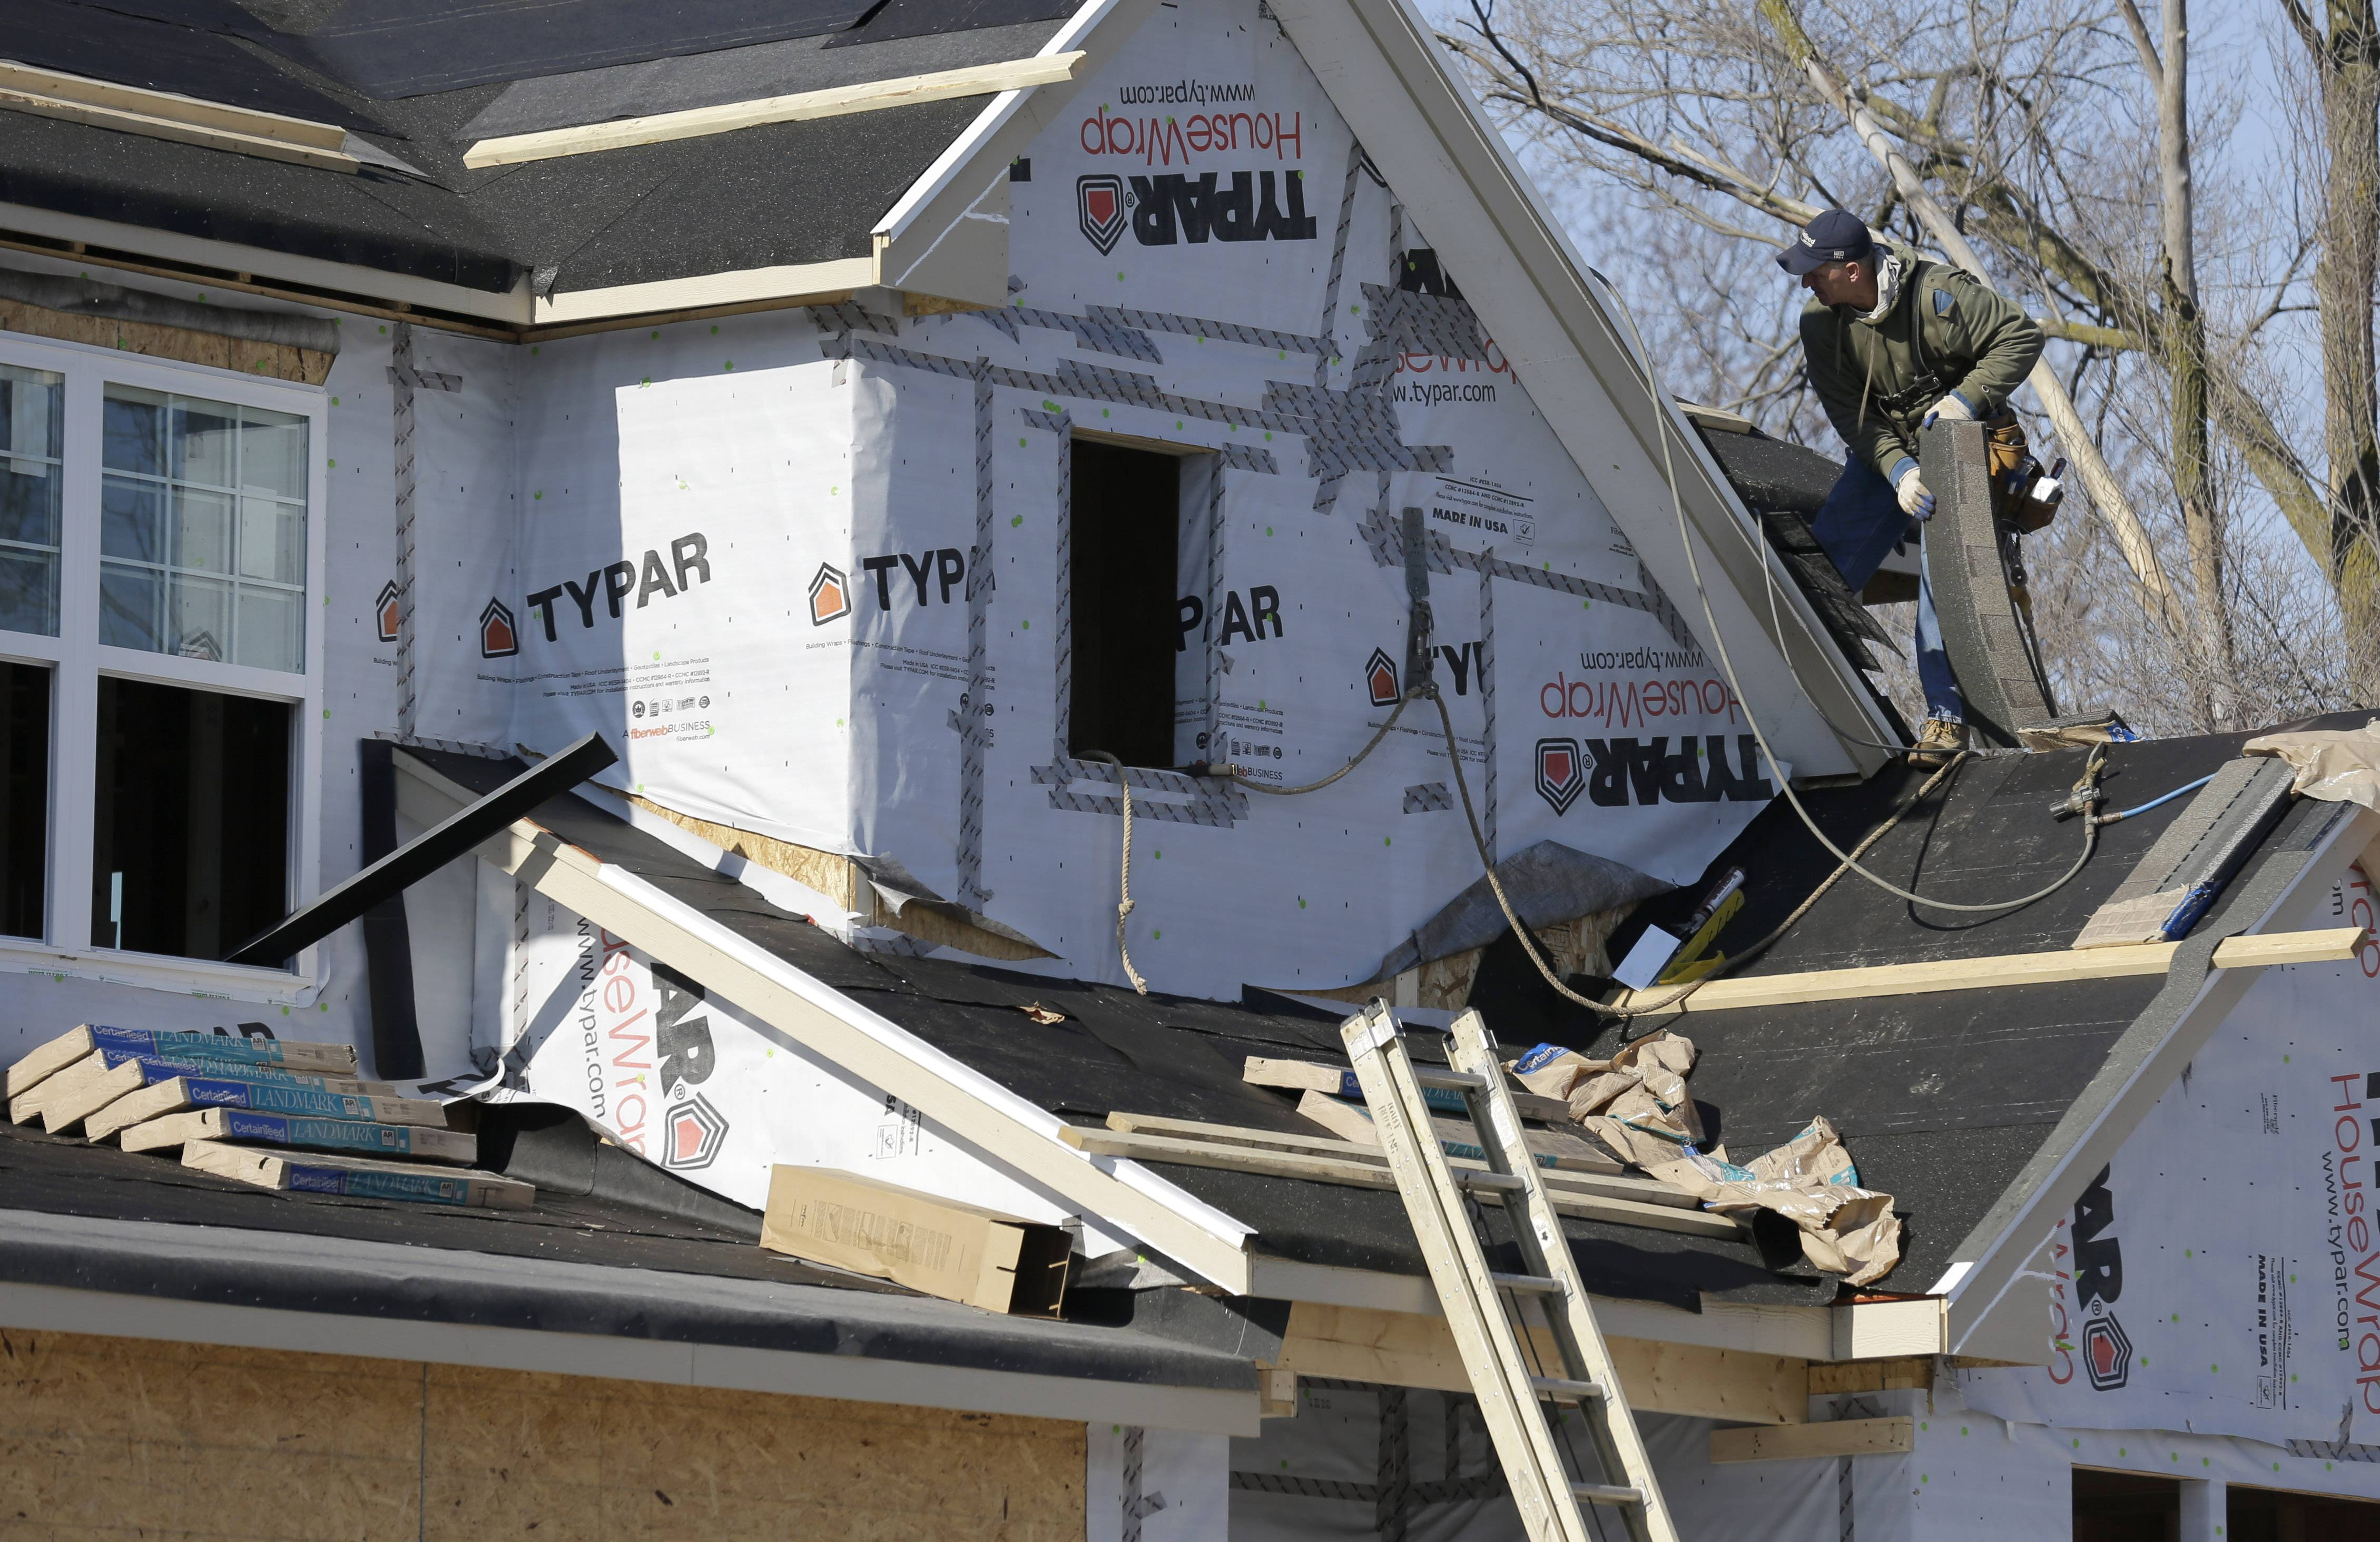 A builder works on the the roof of a new home under construction in Wilmette.